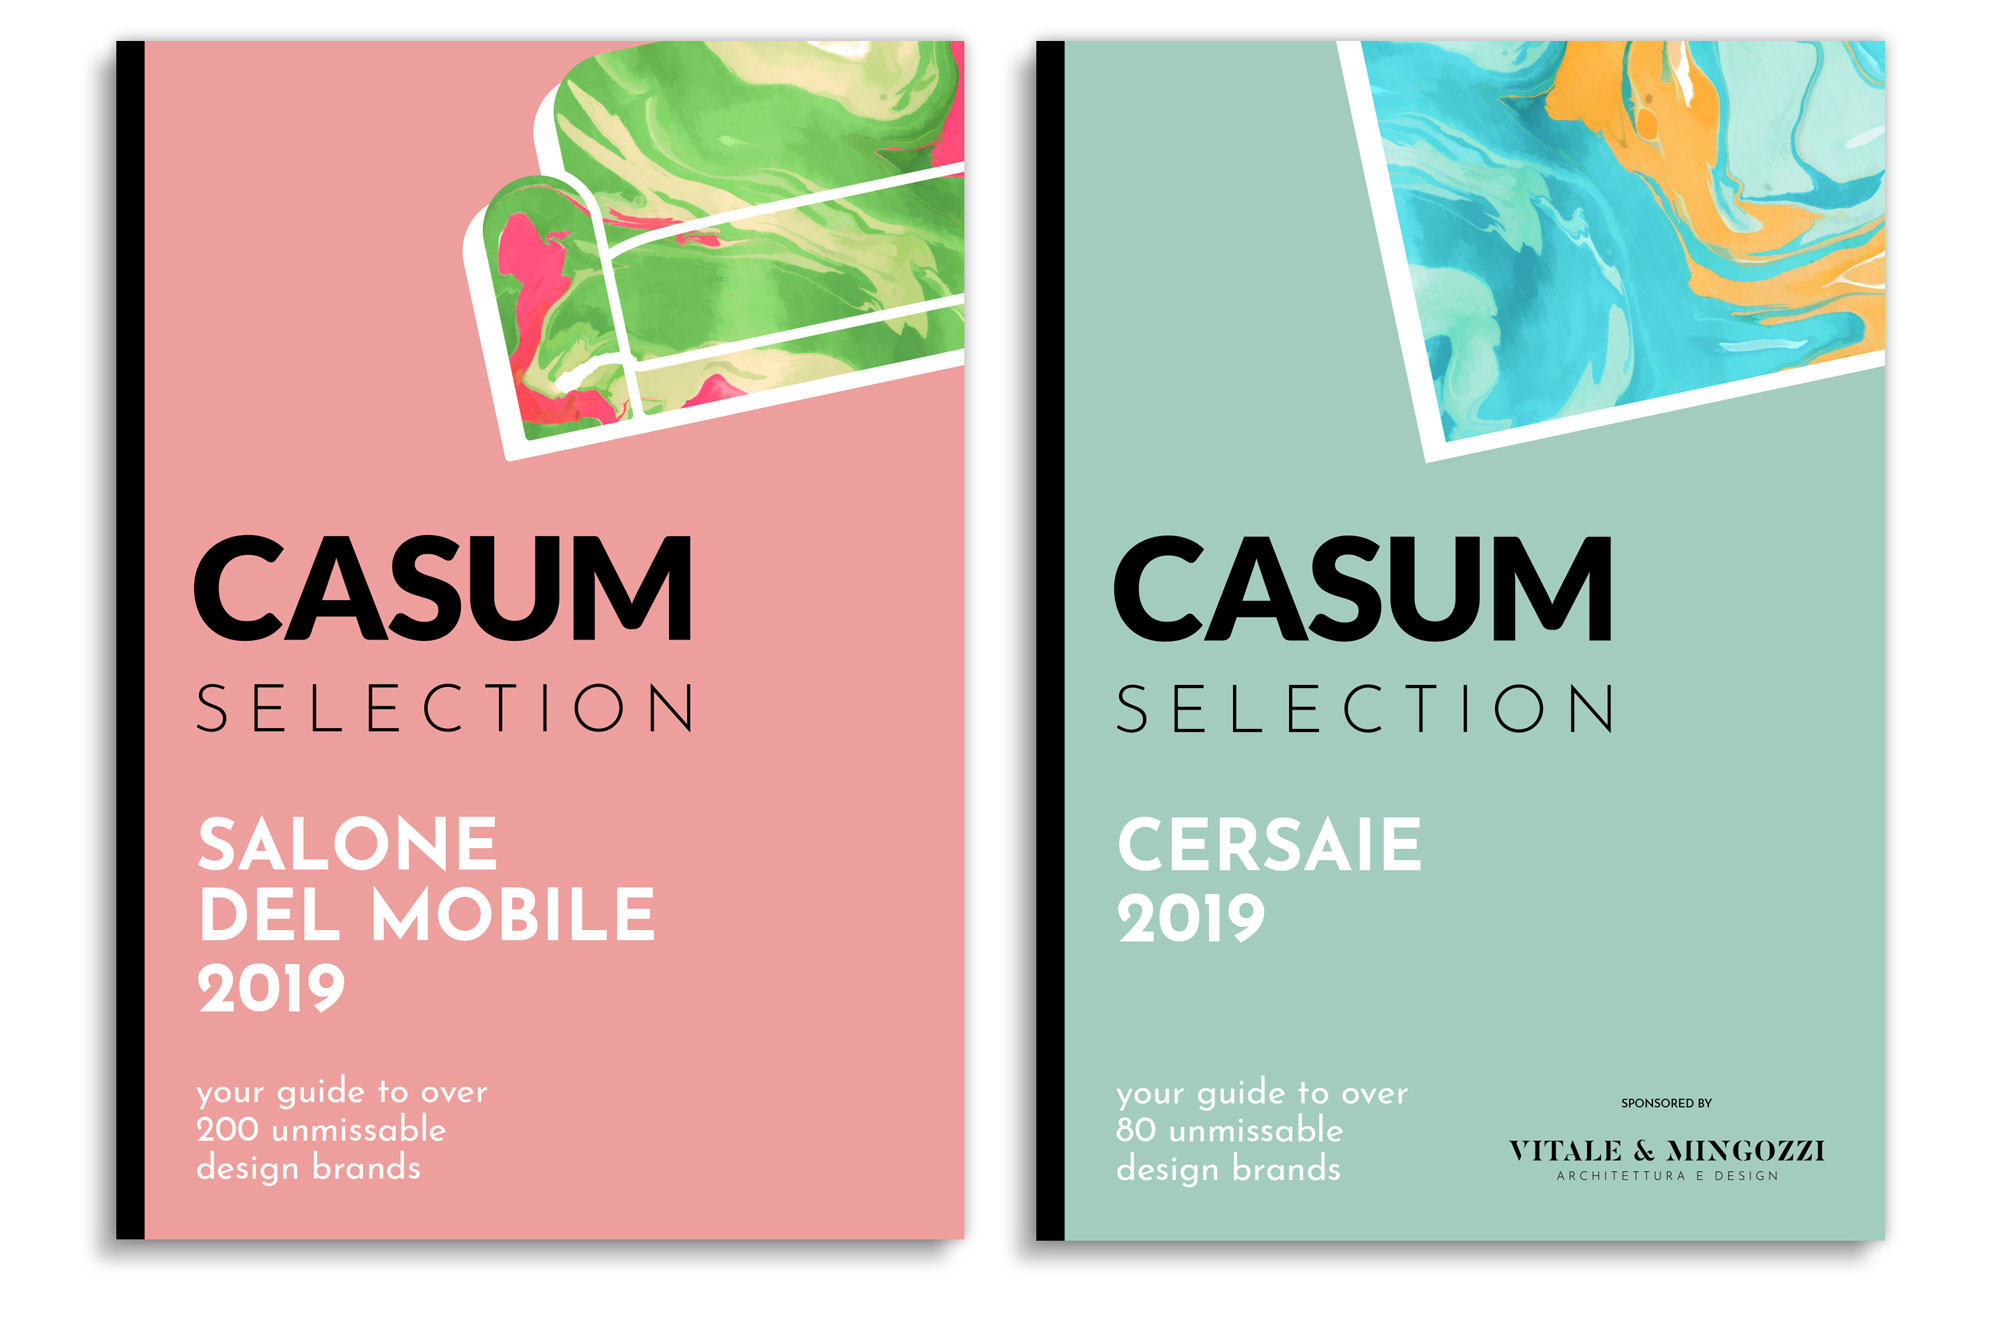 Casum Selection Salone del Mobile 2019 and Casum Selection Cersaie 2019 covers